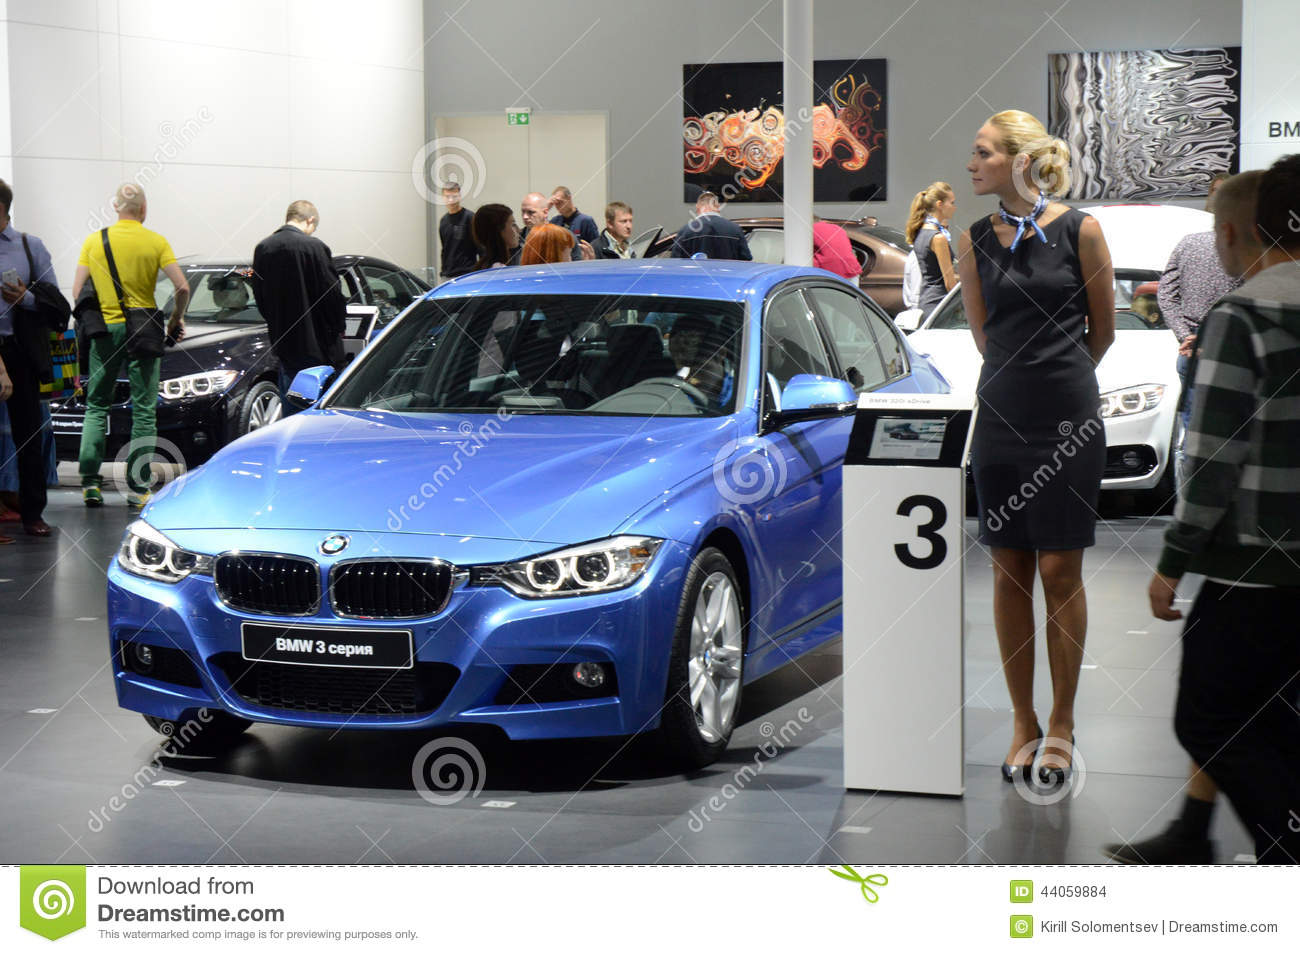 Bmw third series moscow international automobile salon for 3rd international salon of photography smederevo 2013